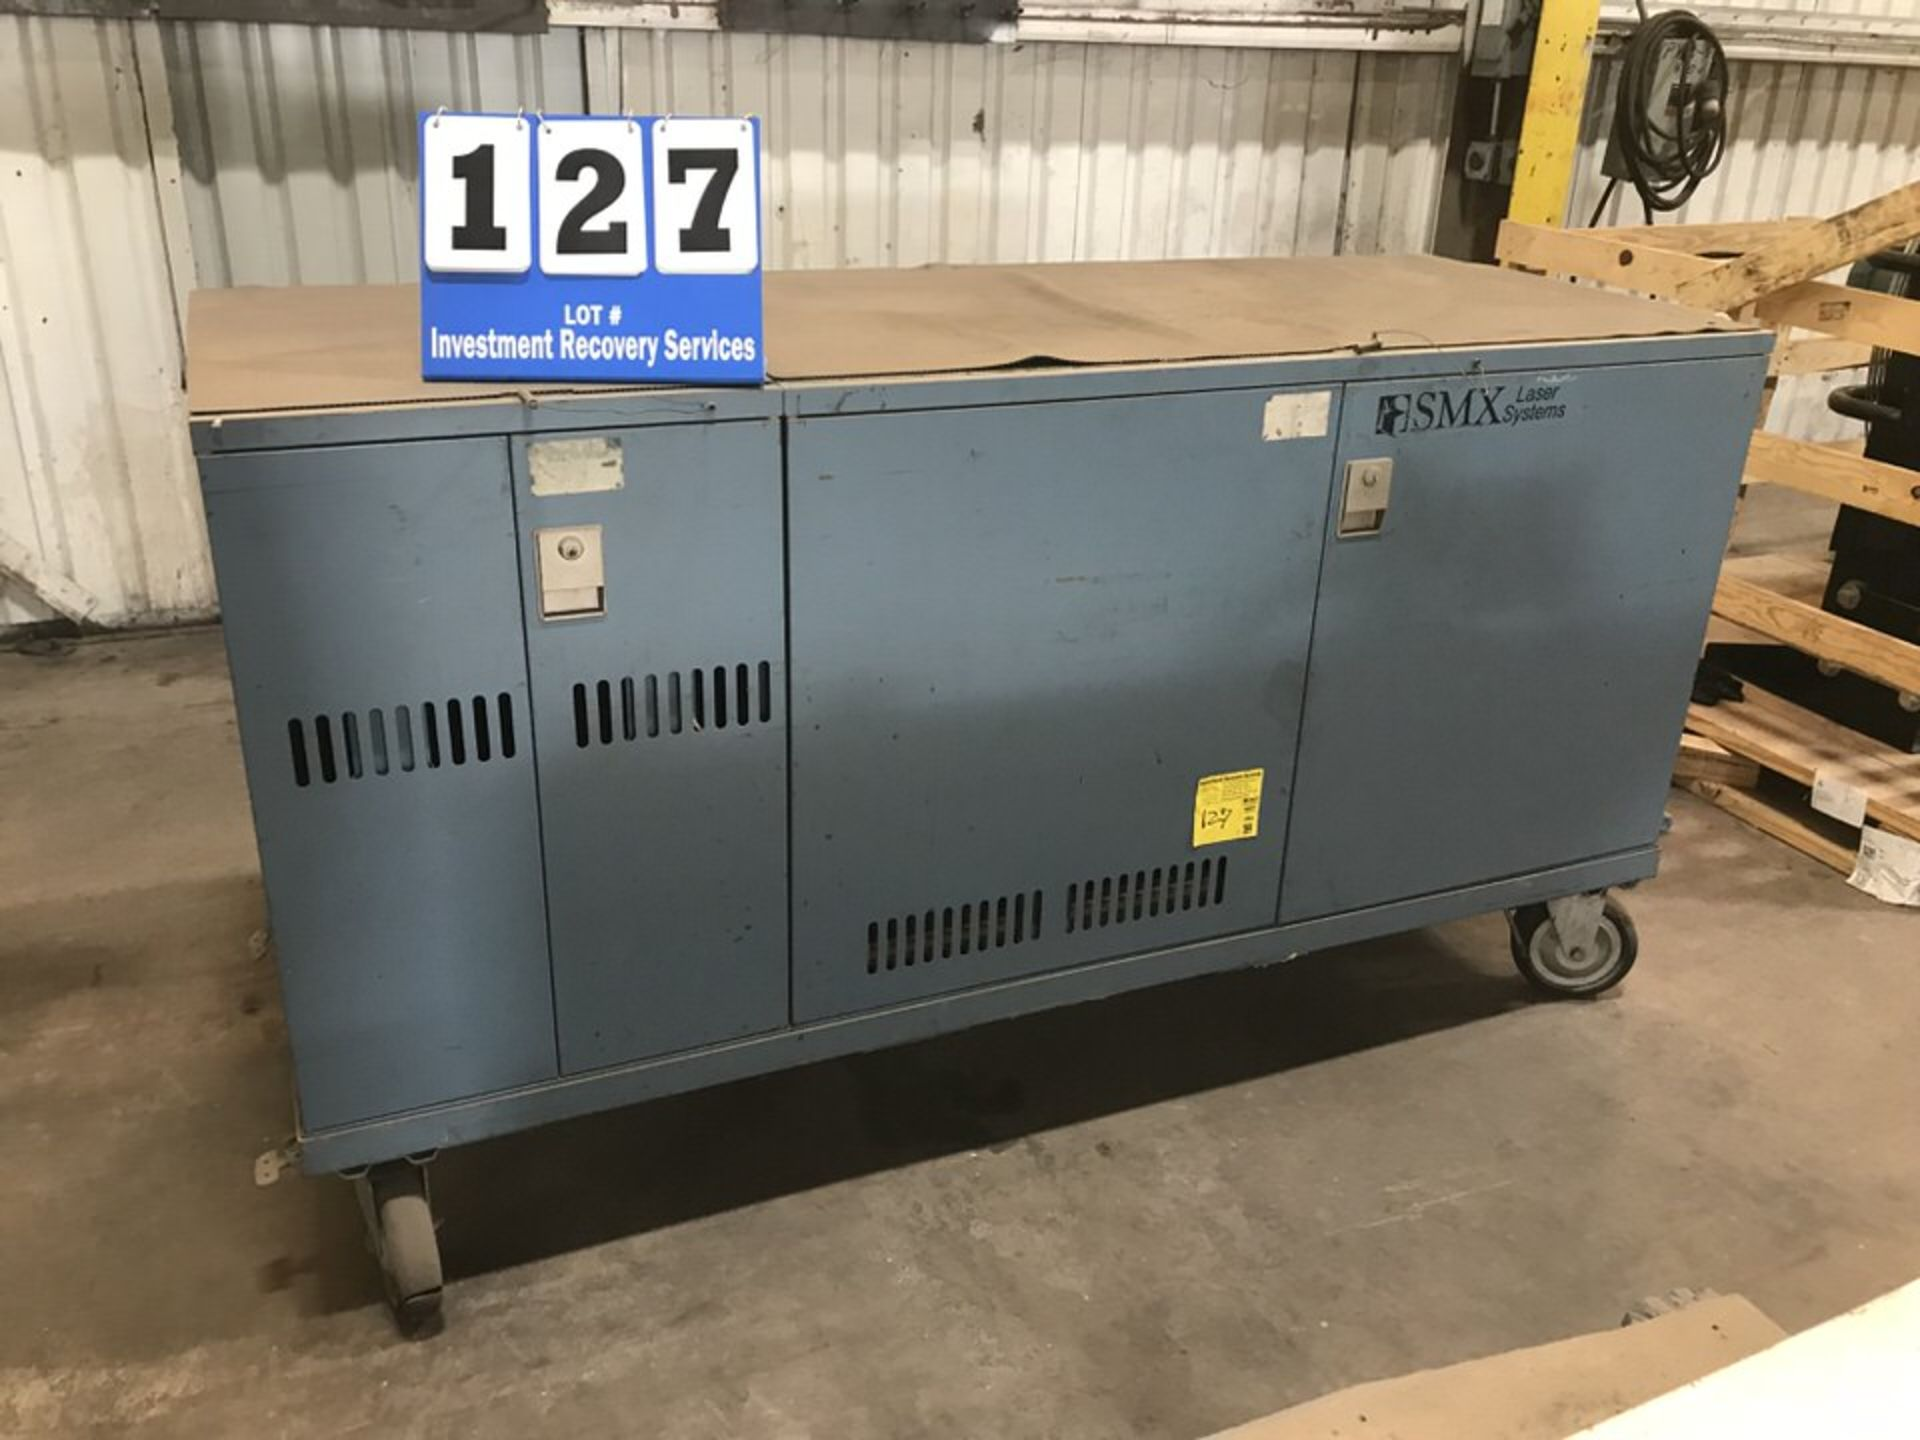 Lot 127 - SMX Laser Systems Unit (LOCATION: 3421 N SYLVANIA, FT WORTH, TX, 76111)